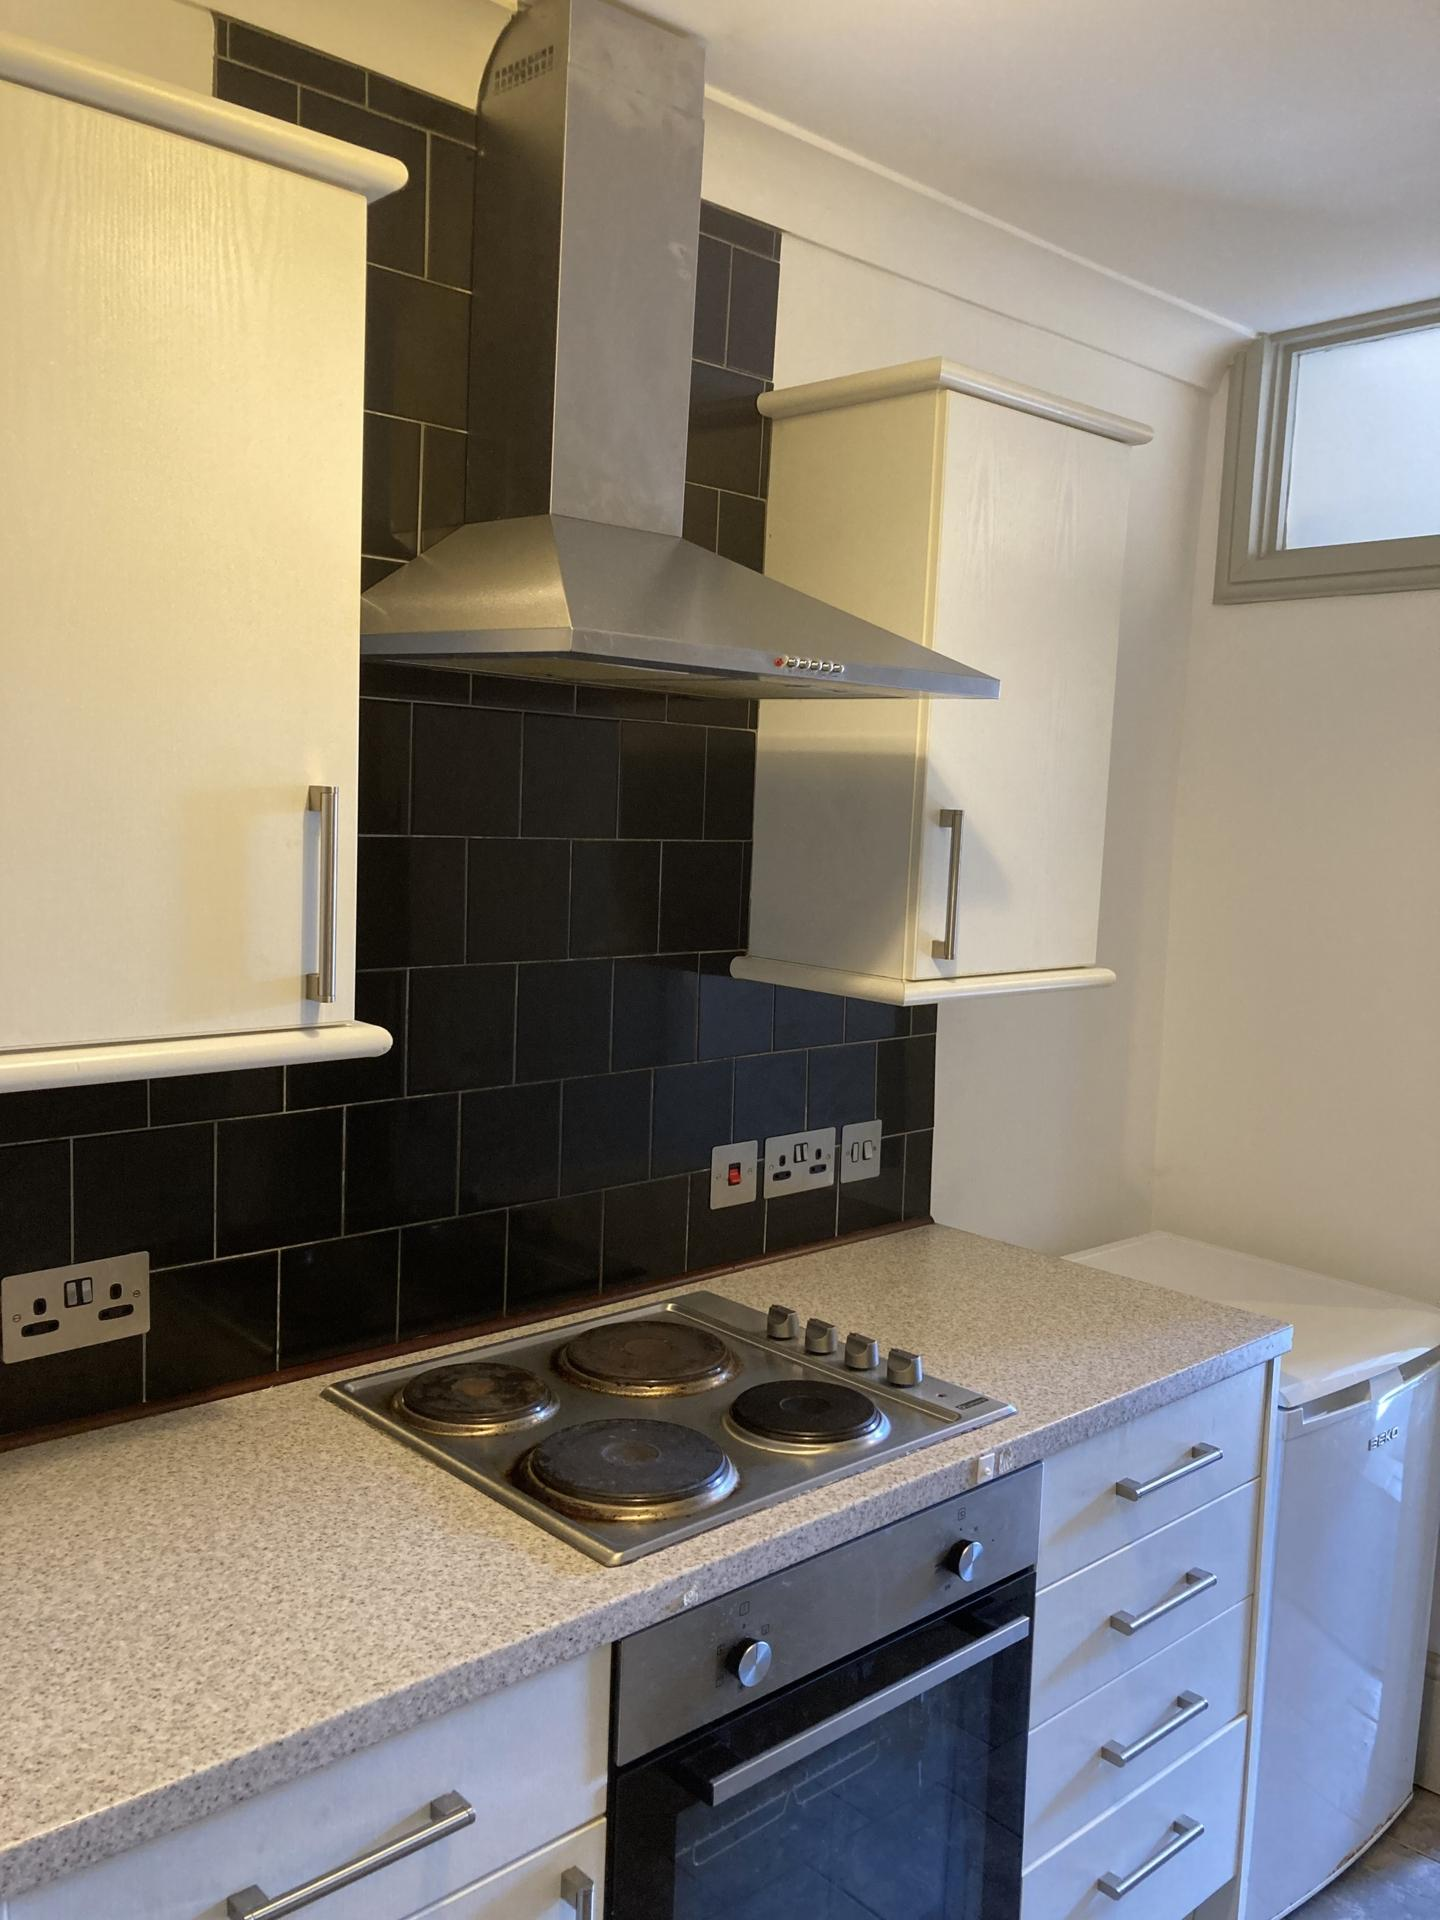 2 bed flat to rent in Victoria Parade, CT10